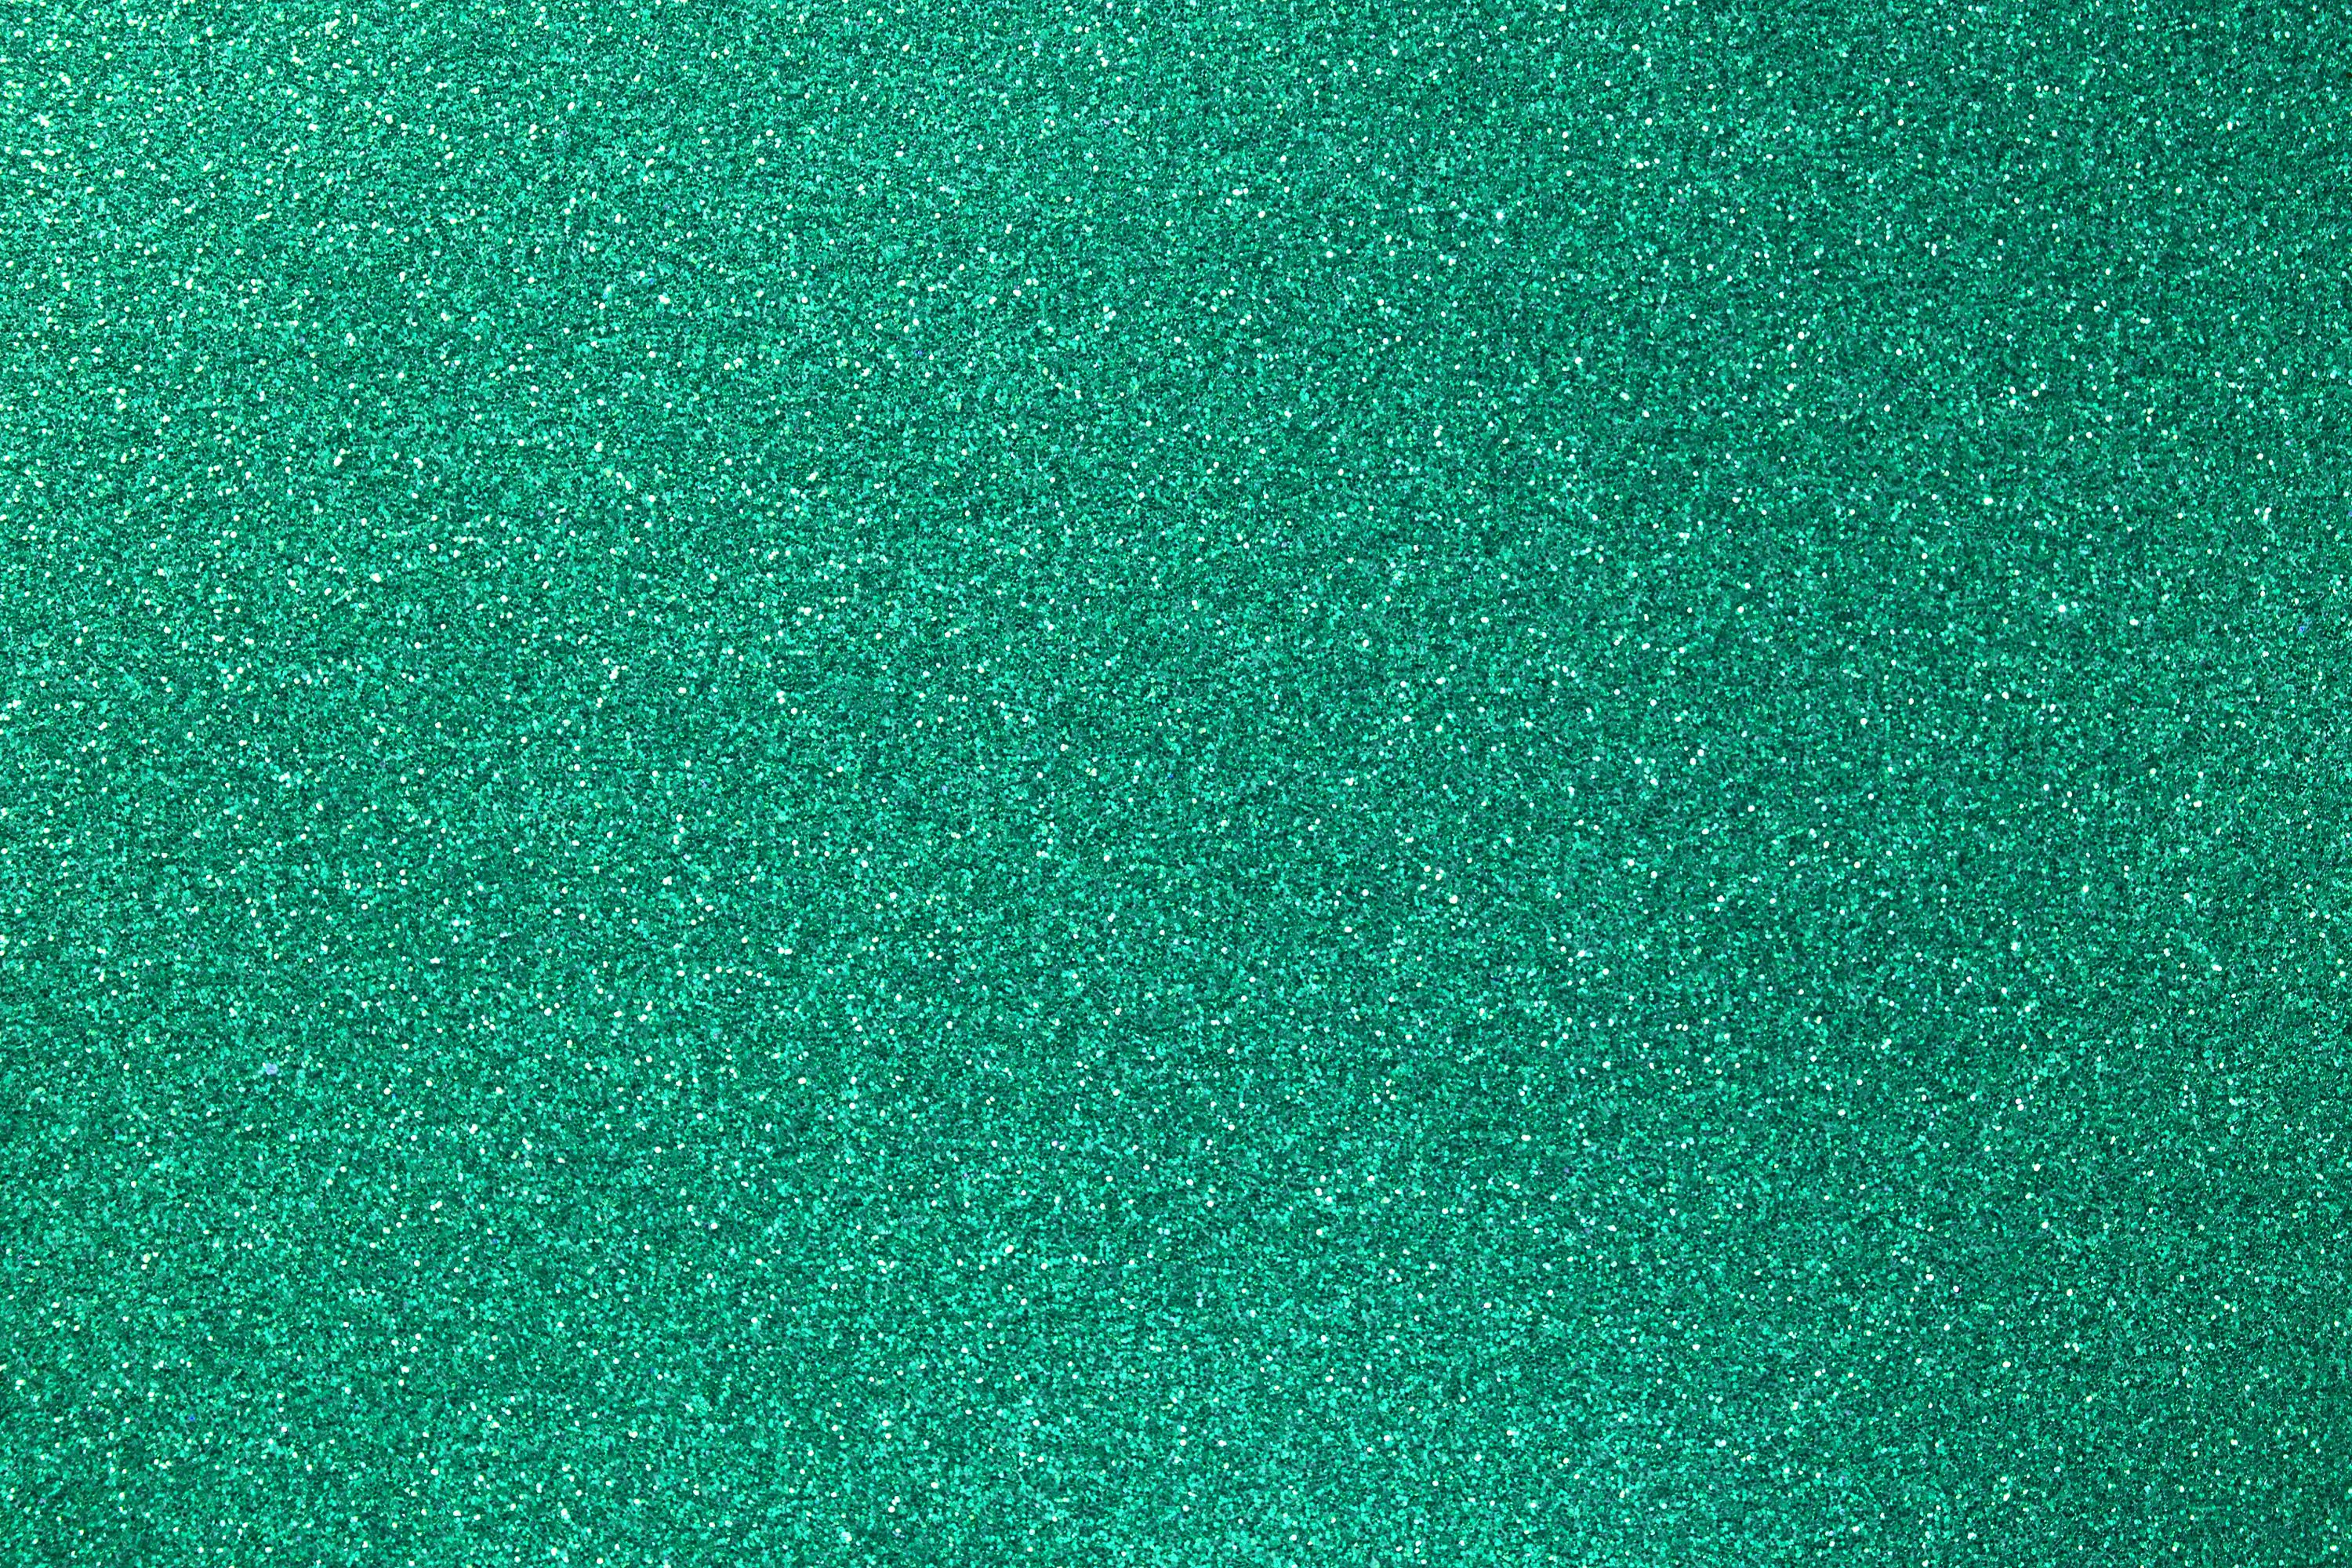 green sparkle background - photo #40